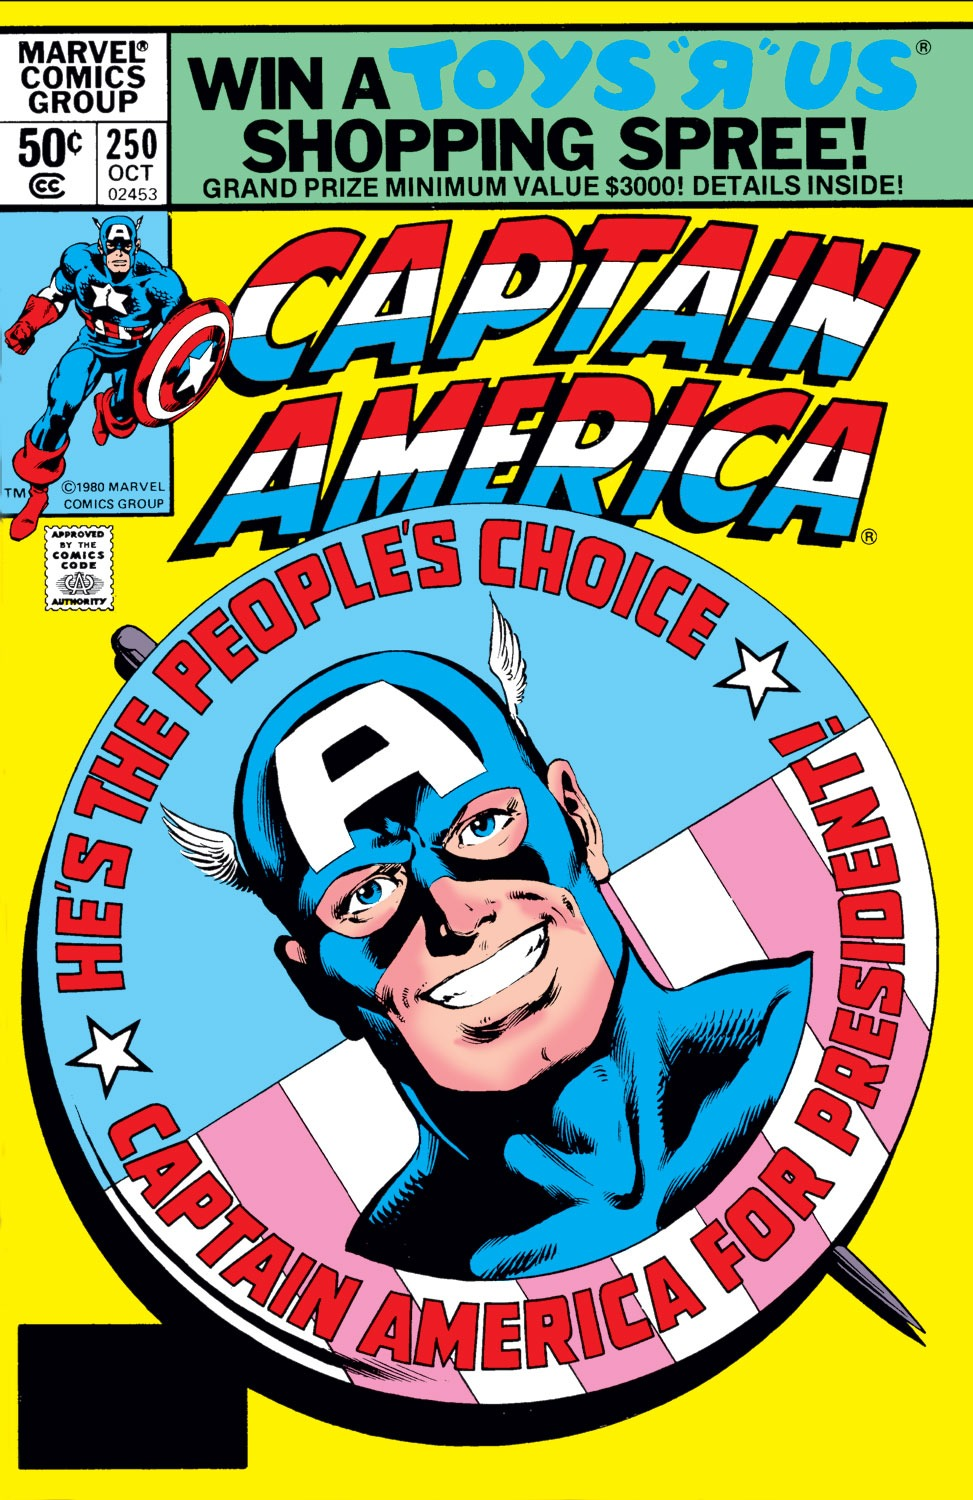 Captain America (1968) #250, cover penciled by John Byrne and inked by Joe Rubinstein.